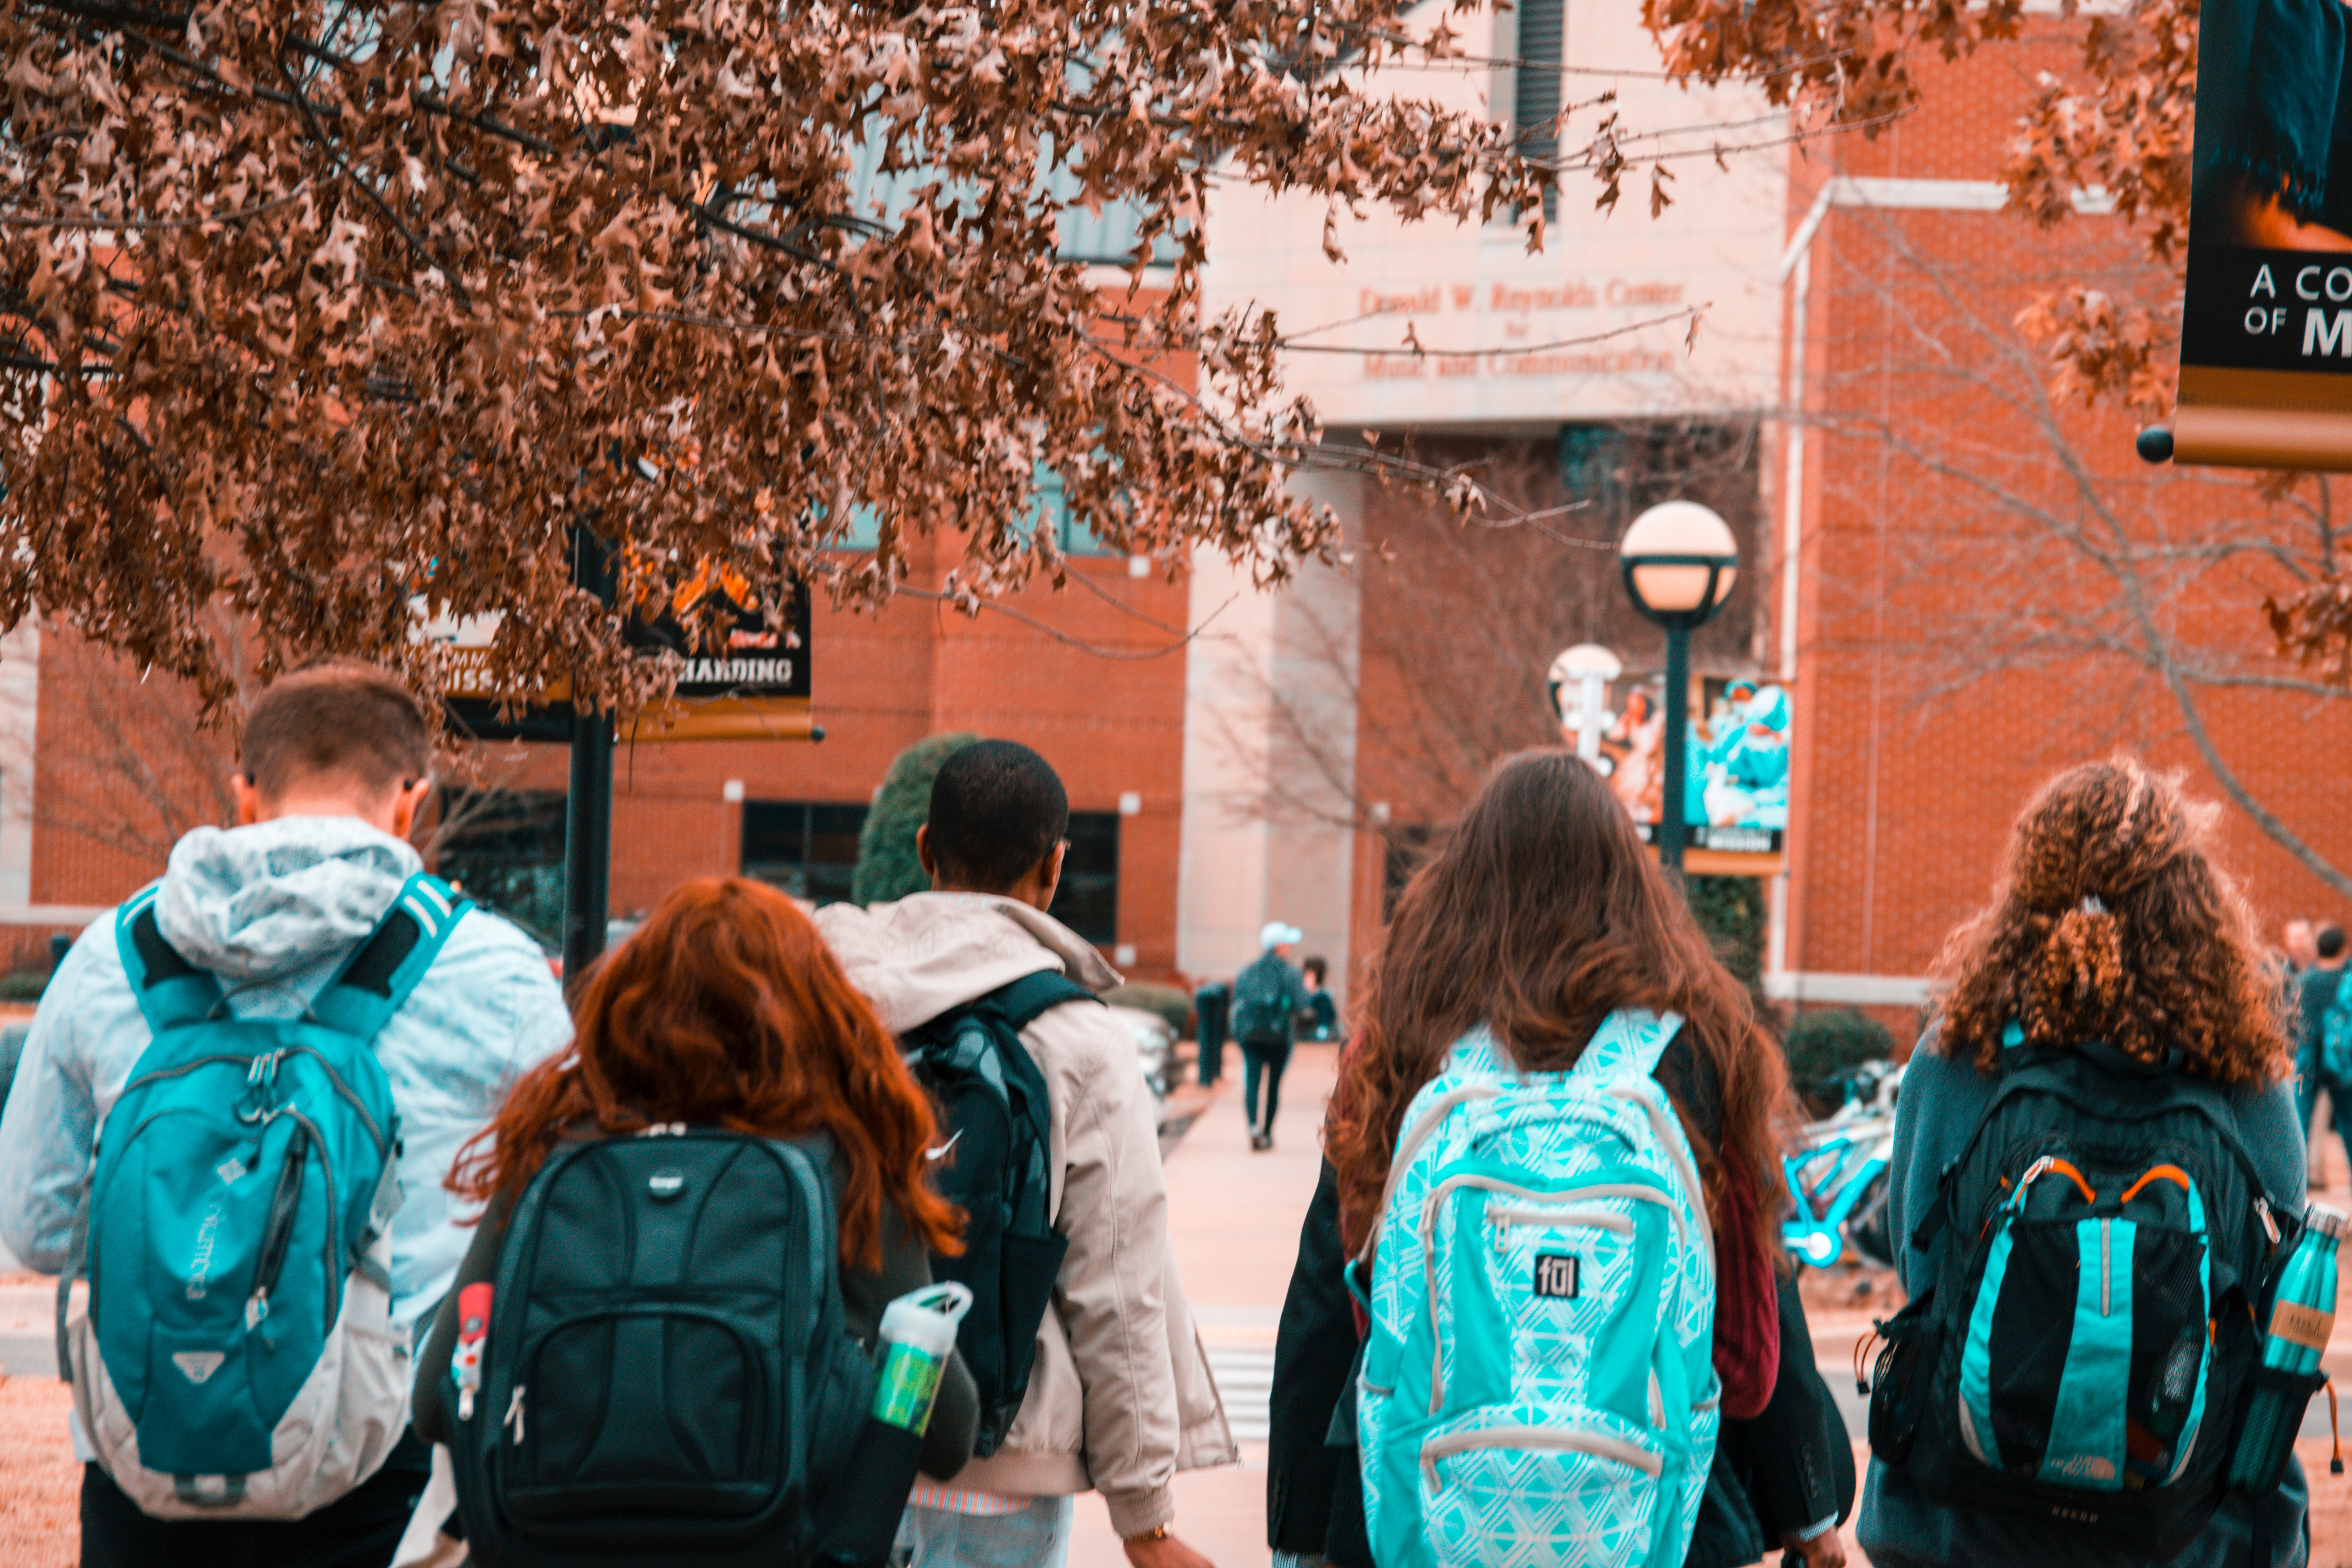 Students with backpacks walking into a brick building